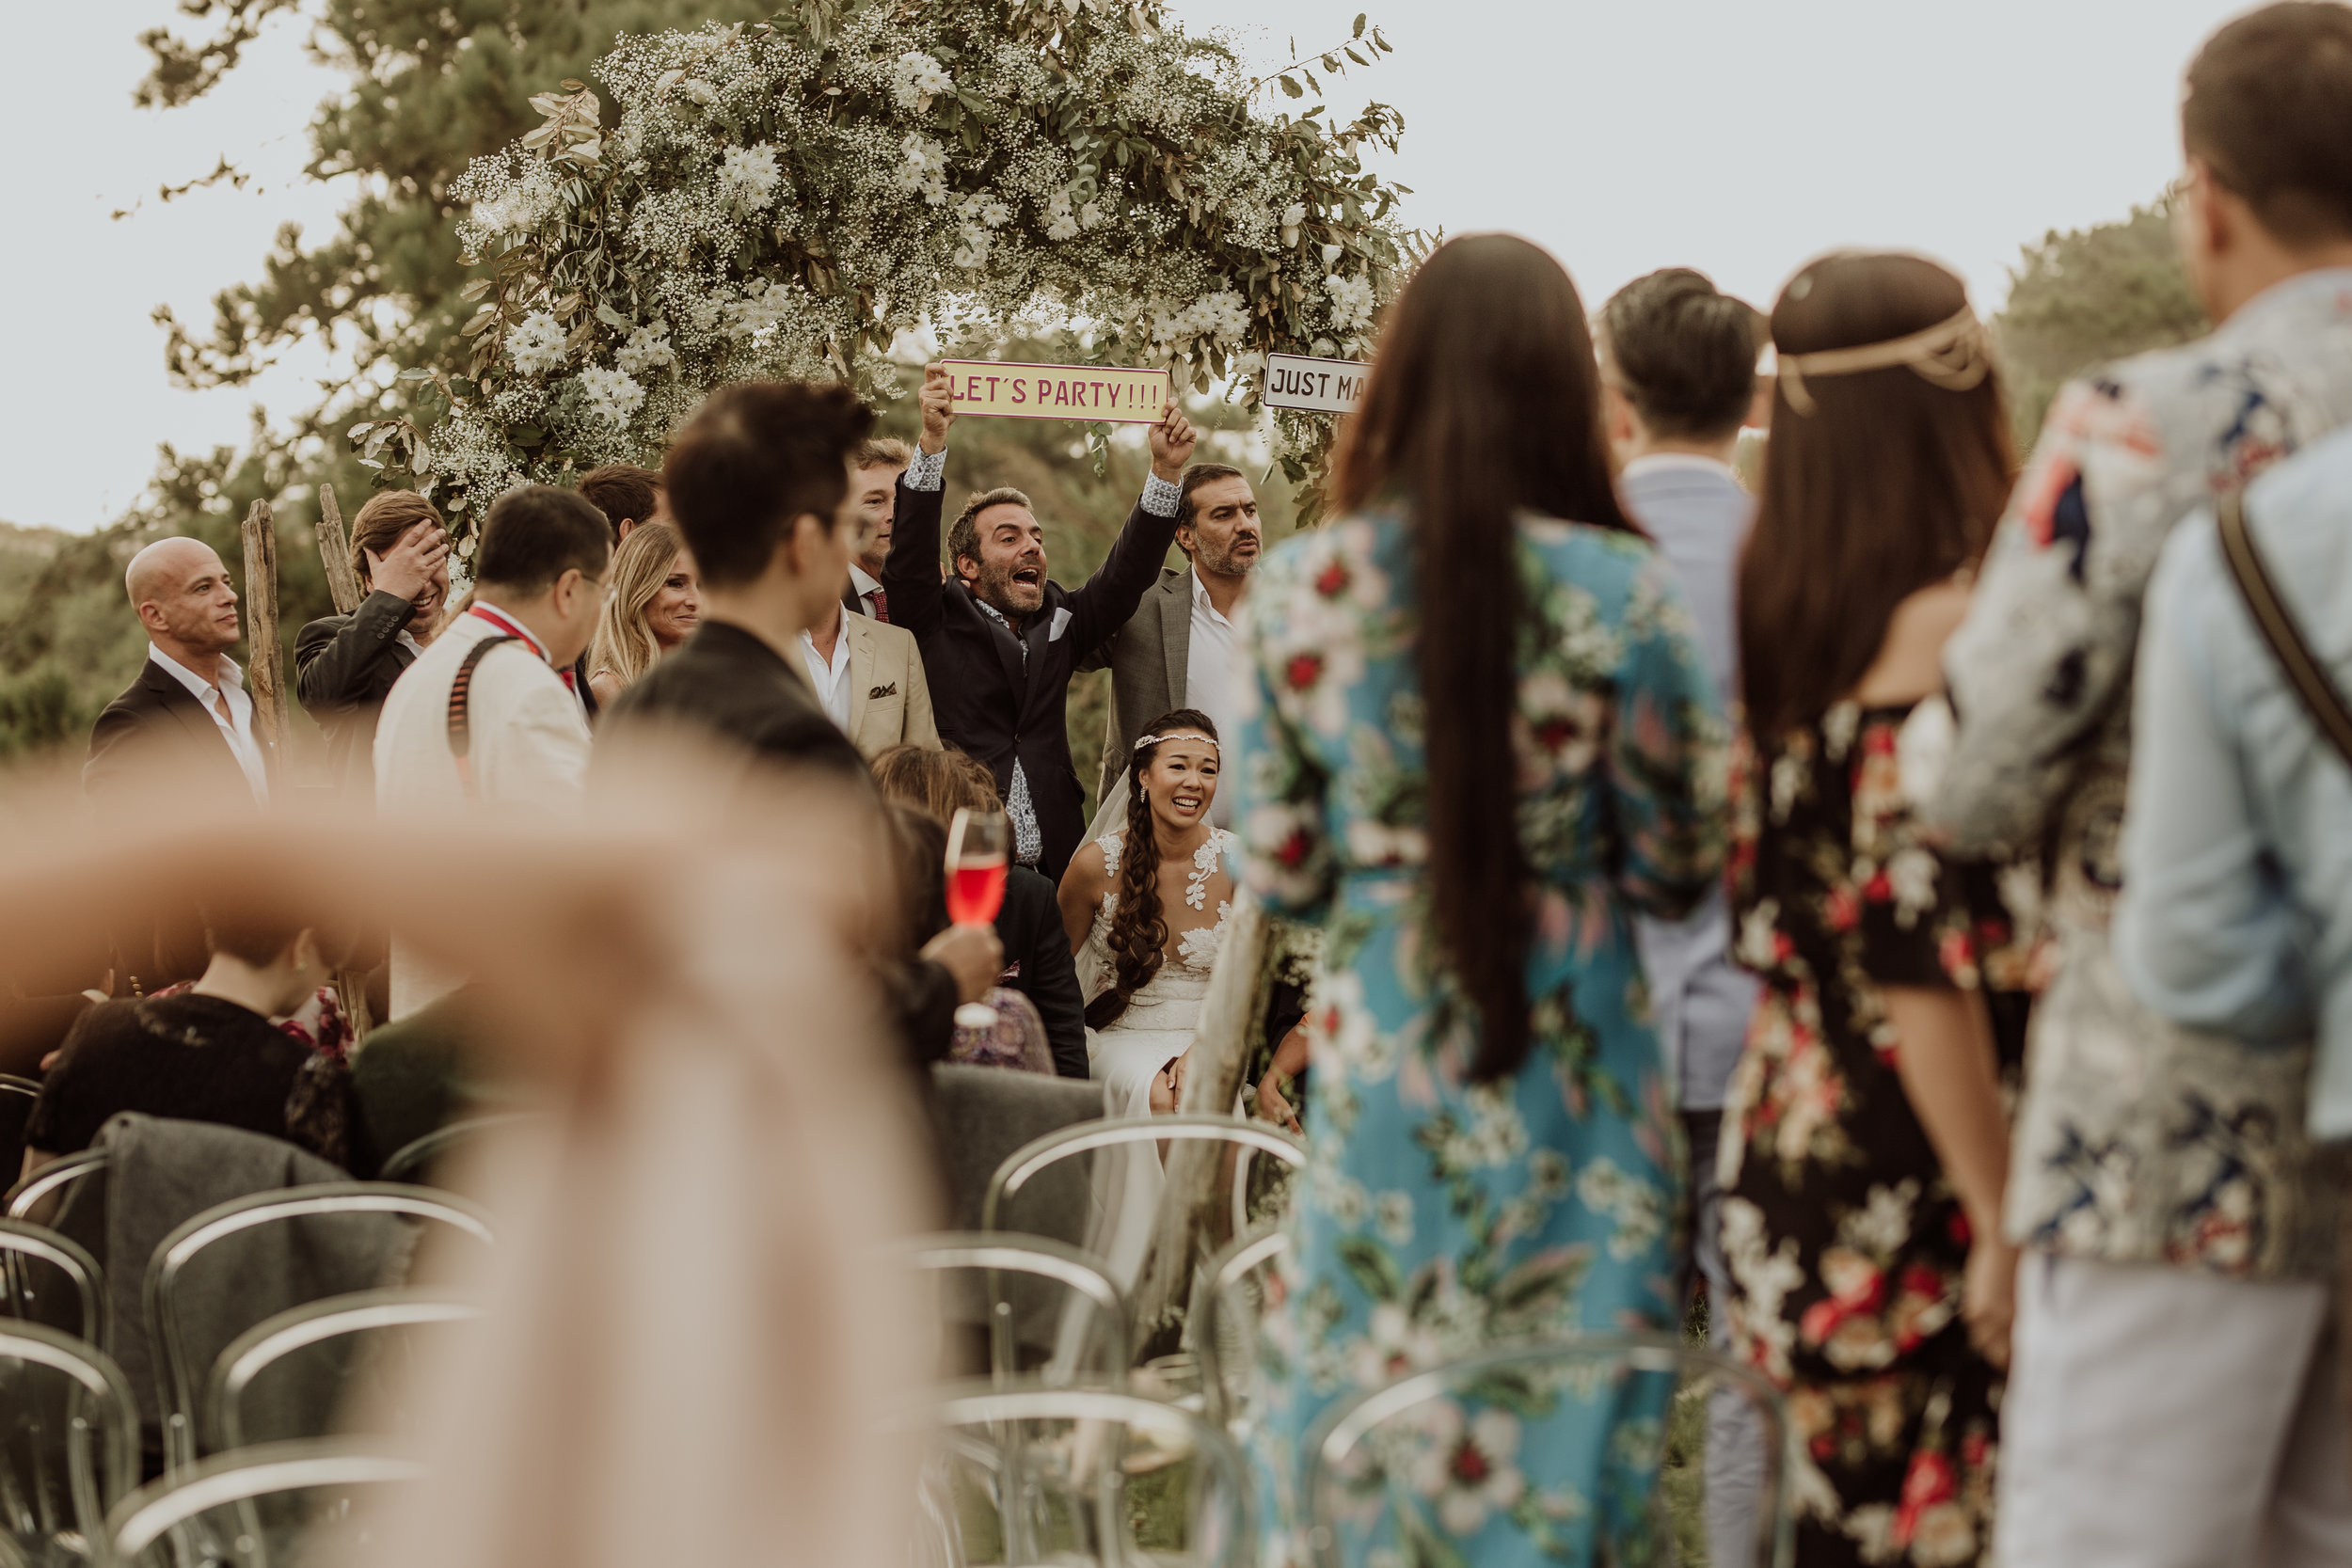 Y&M_816_15_September_2018WEDDING_DAY.jpg